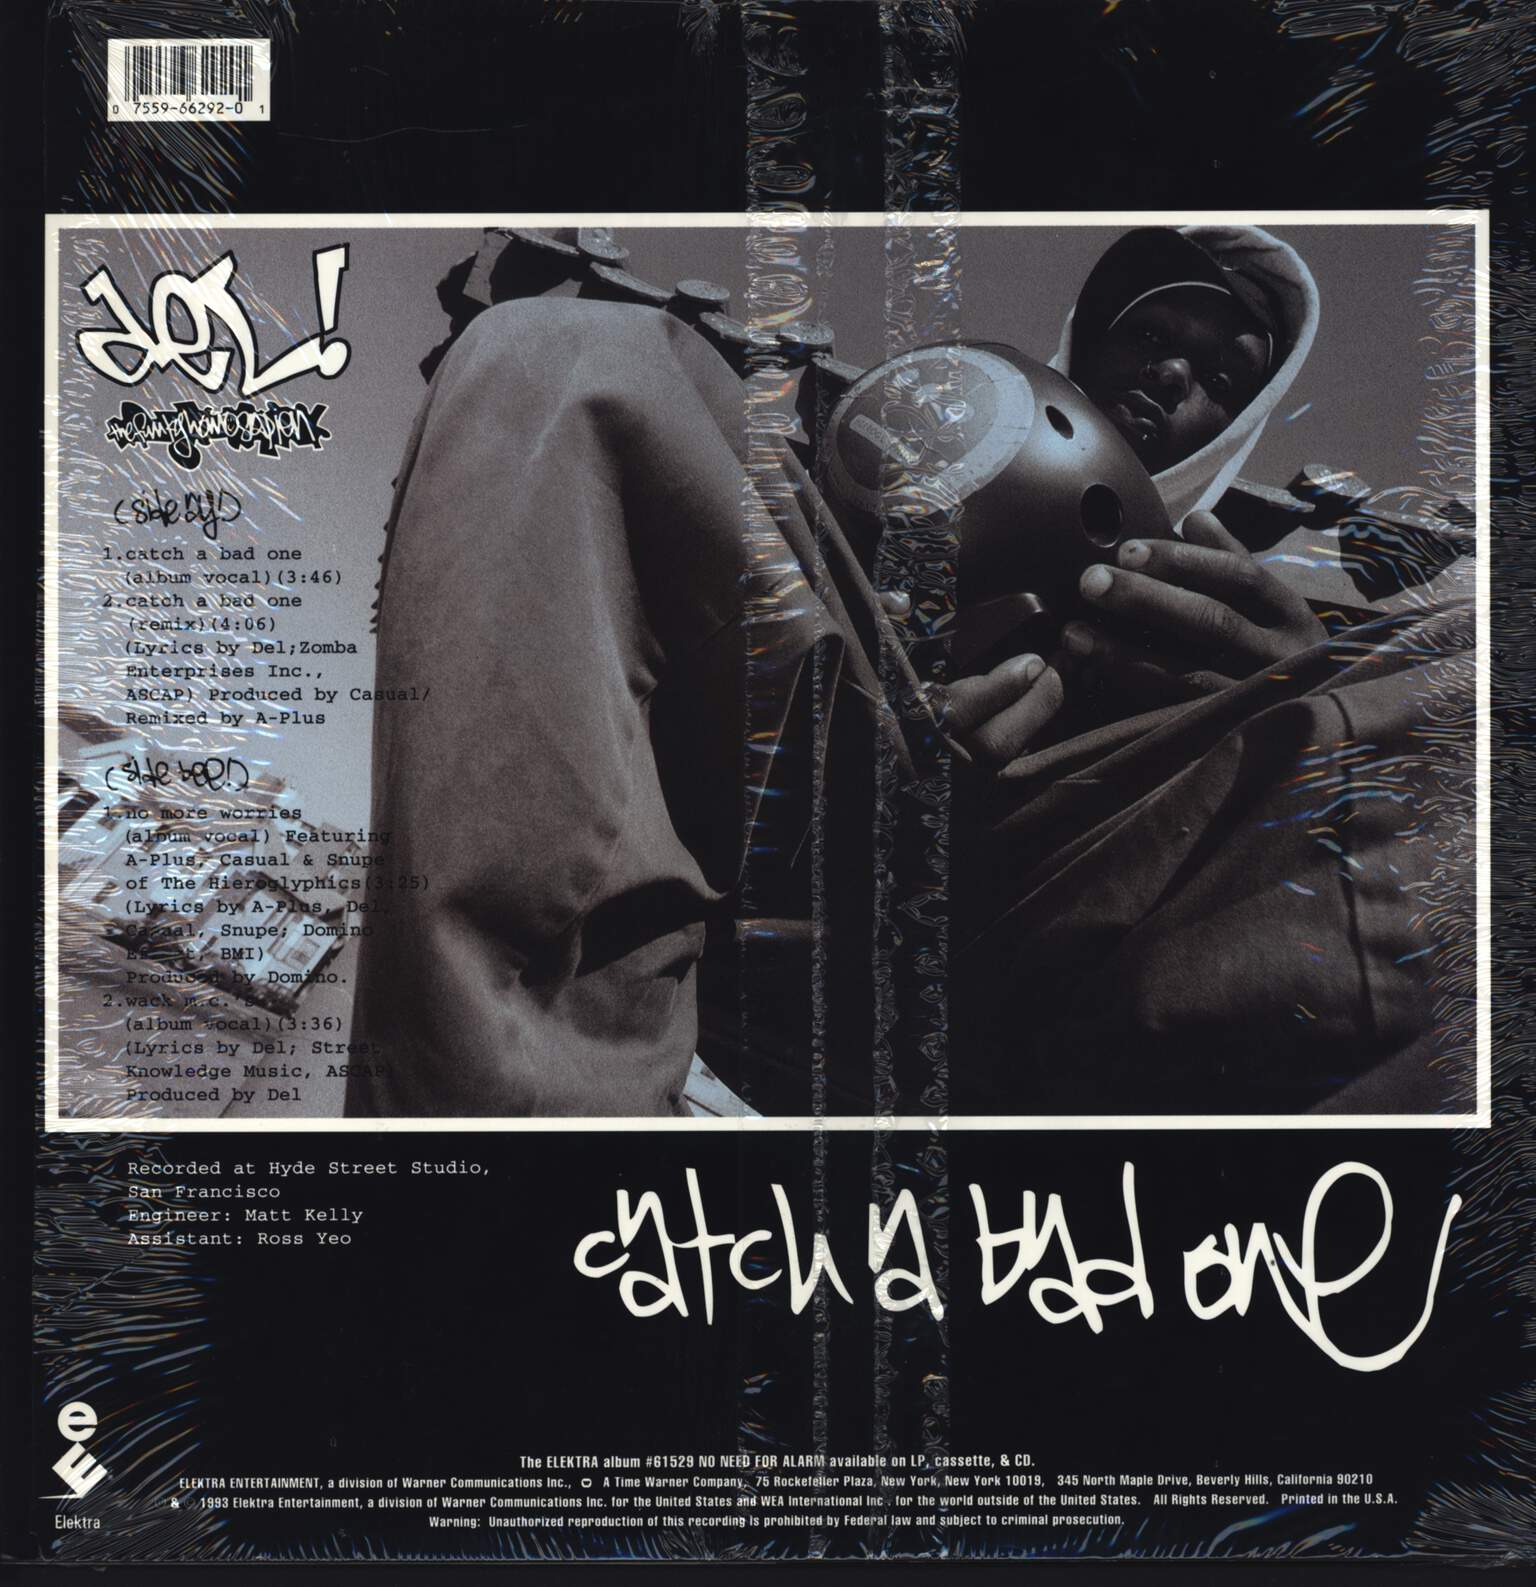 "Del Tha Funkee Homosapien: Catch A Bad One, 12"" Maxi Single (Vinyl)"